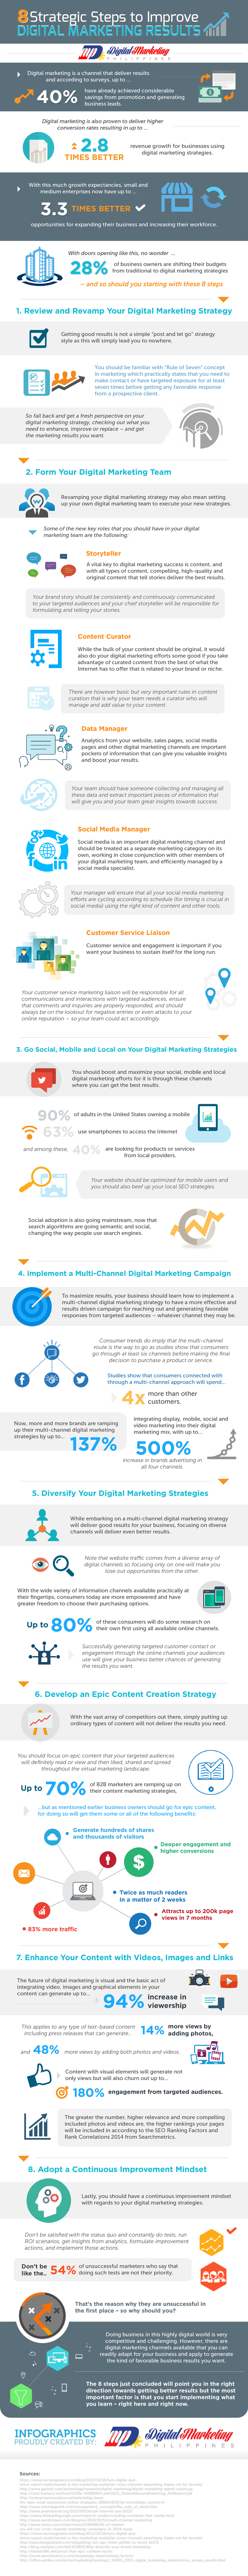 8 Strategic Steps to Improve Digital Marketing Results (Infographic) - An Infographic from Digital Marketing Philippines